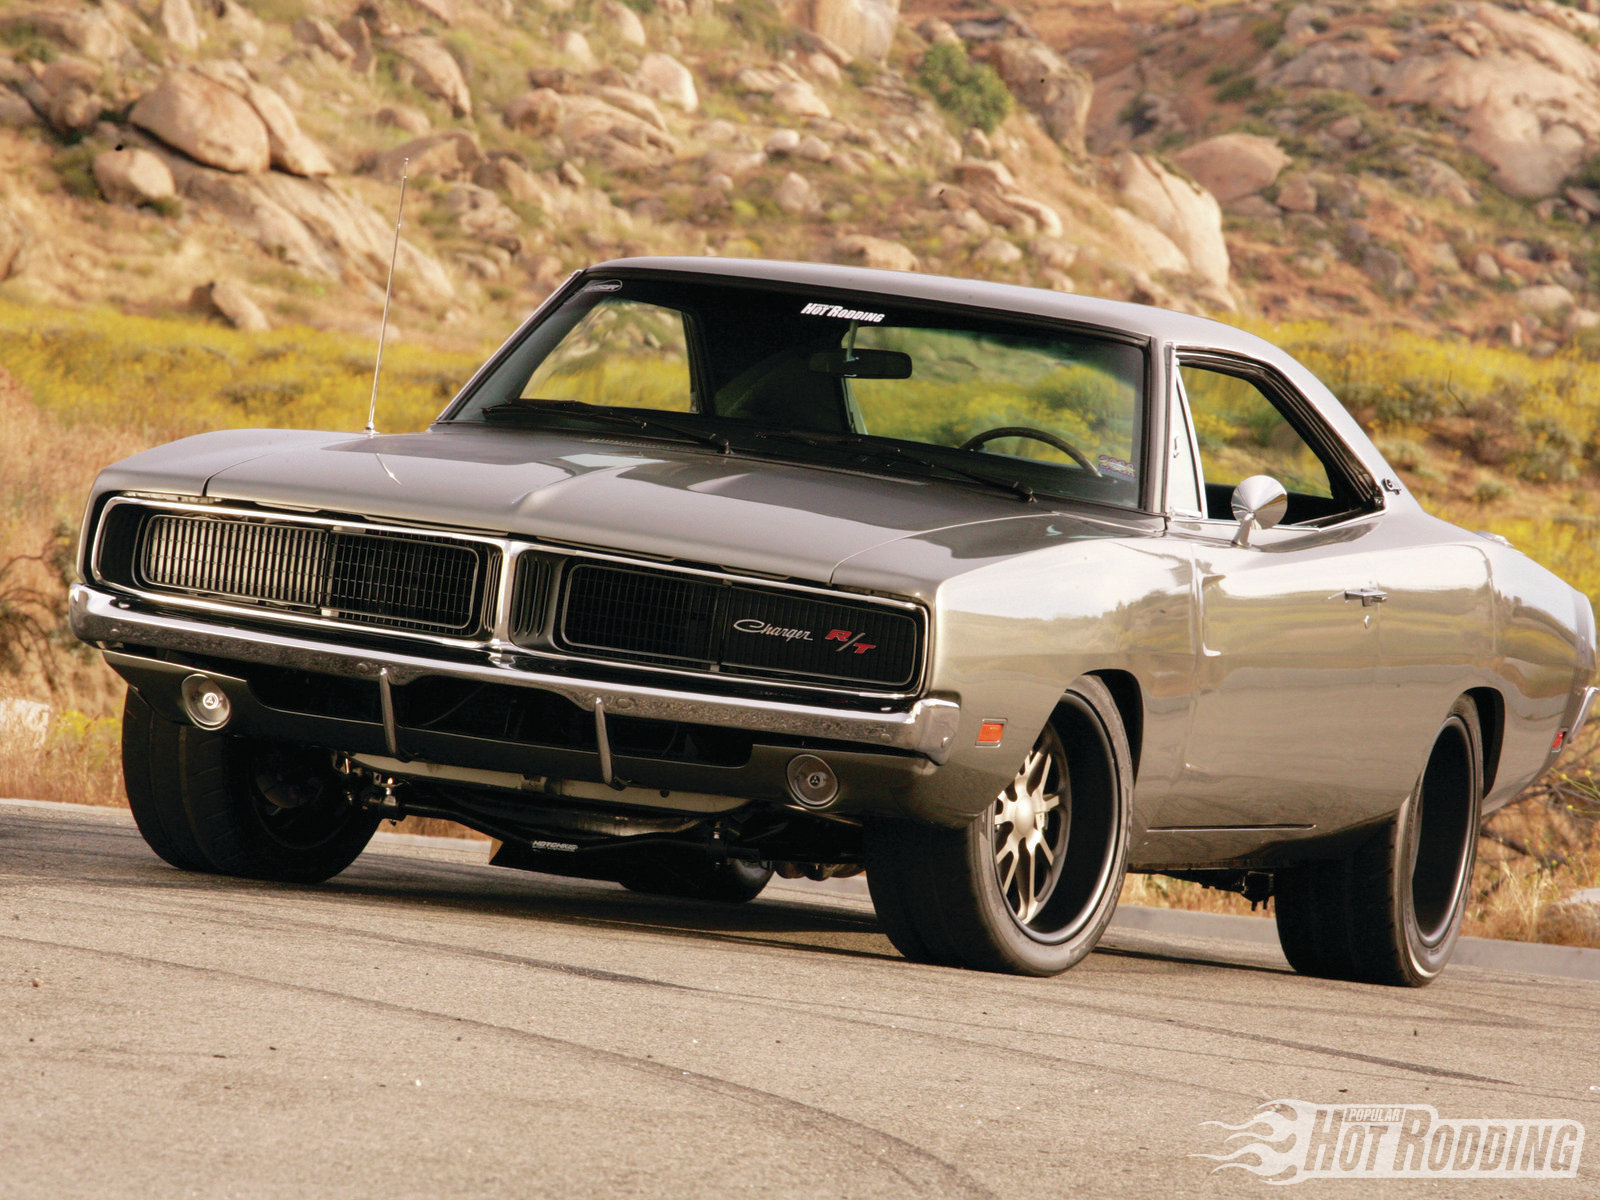 1969 Dodge Charger HD Wallpapers Backgrounds 1600x1200